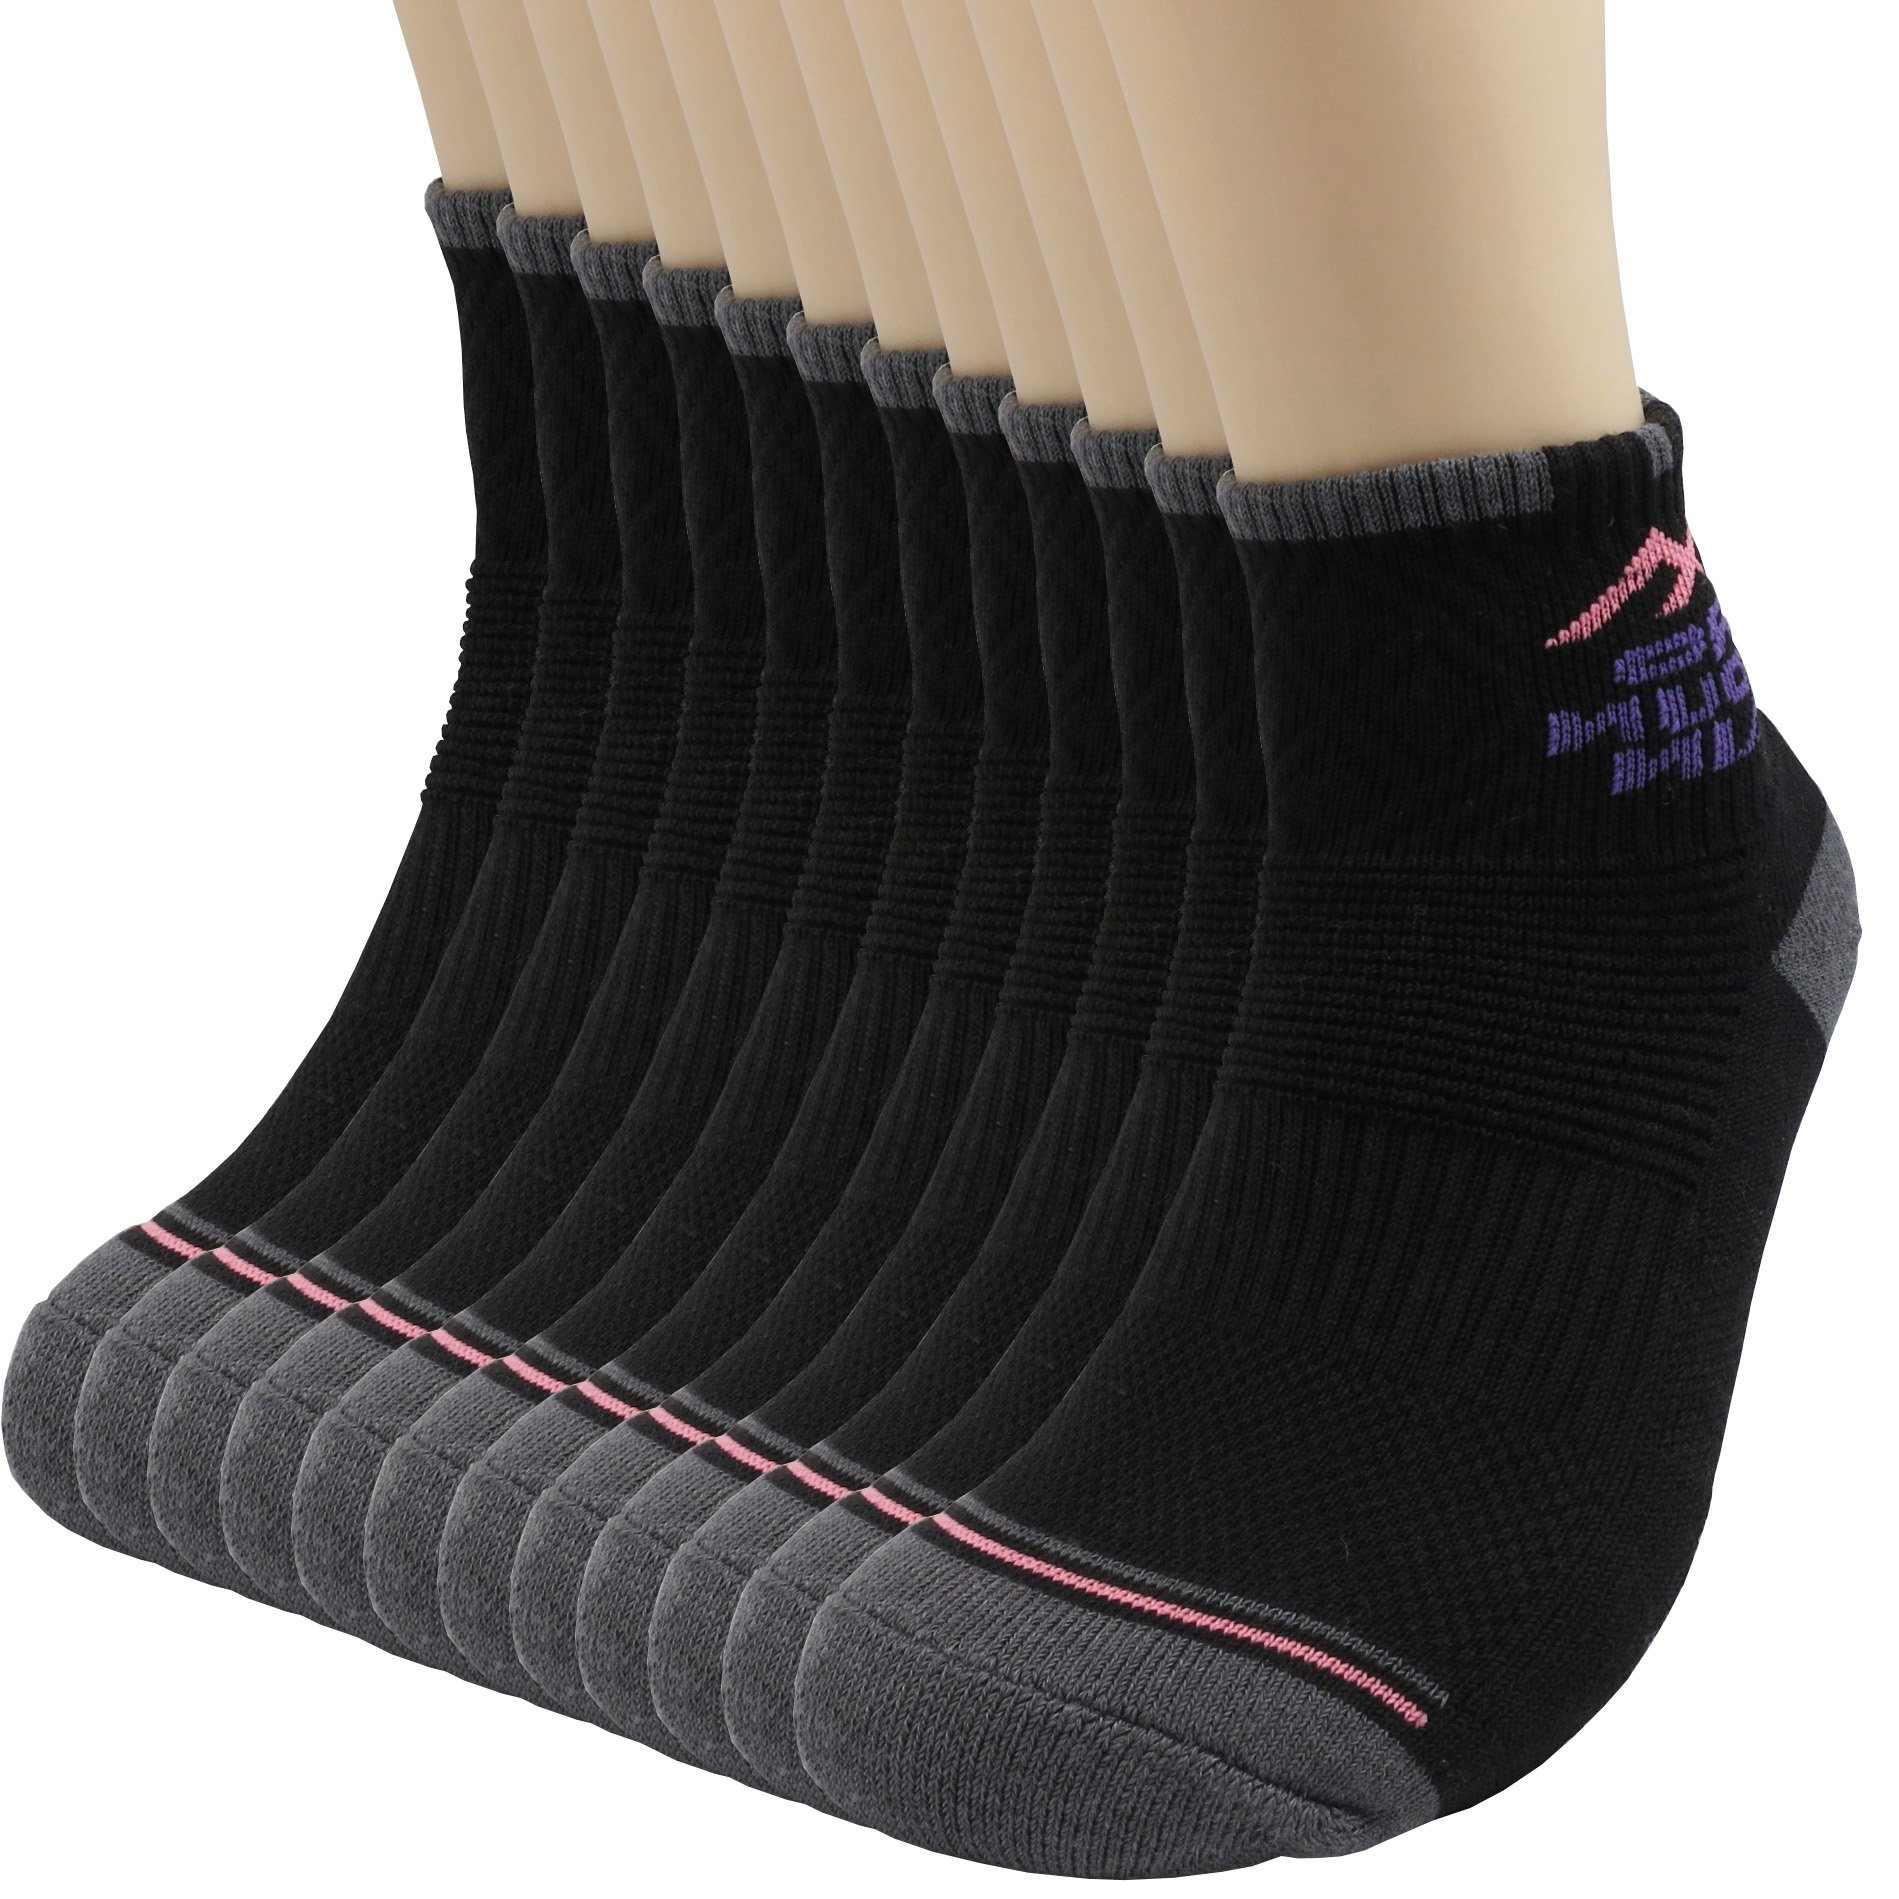 Pro Mountain Cotton Quarter Ankle Cushion All Day Hiking Athletic Sports Socks (S(US Women Shoes 6~8), Black 12pairs Pack S-size)